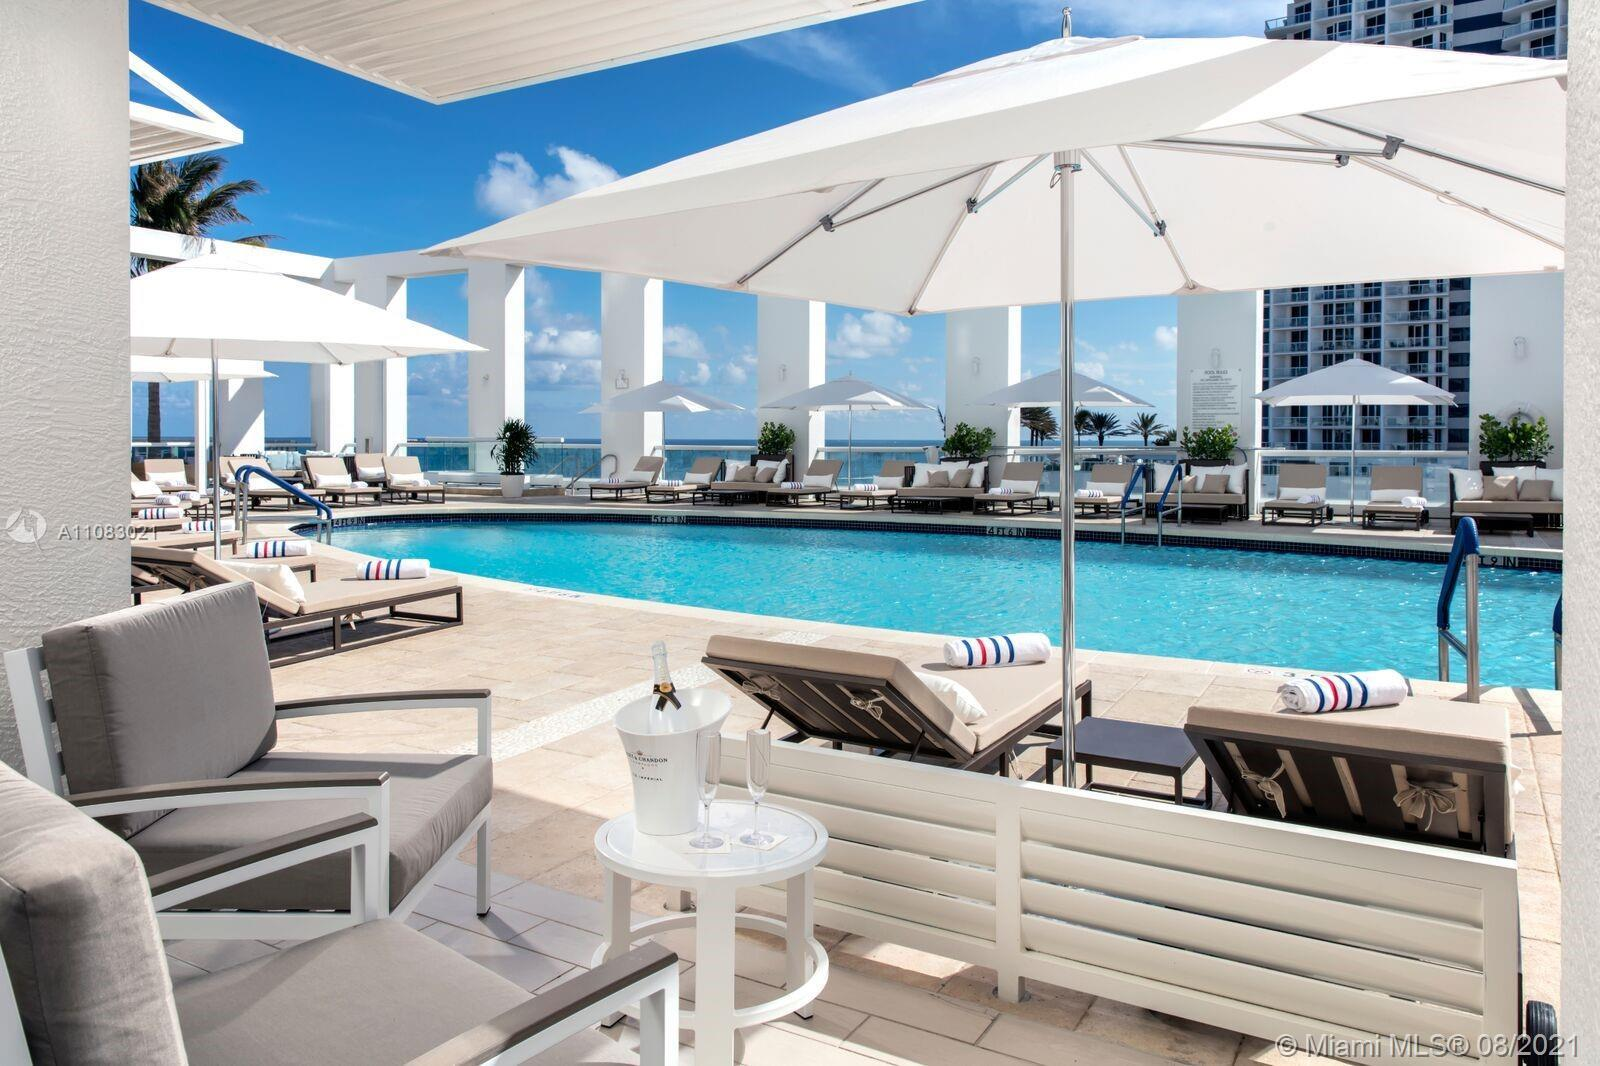 Enjoy the 5-star services of The Conrad Fort Lauderdale Beach, Fort Lauderdale's newest hotel reside